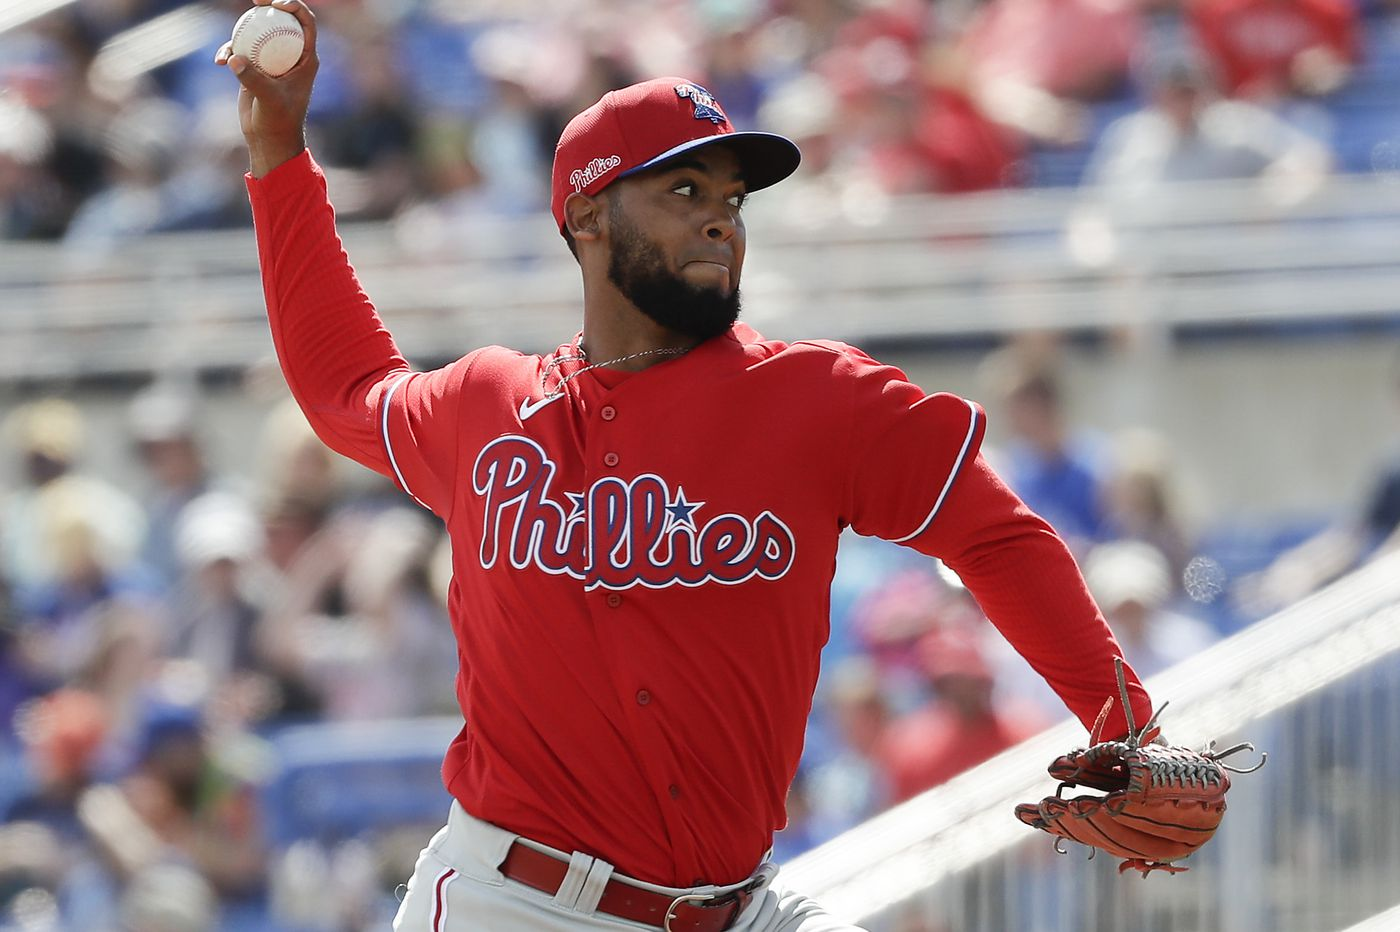 Phillies reliever Seranthony Dominguez likely headed for Tommy John surgery